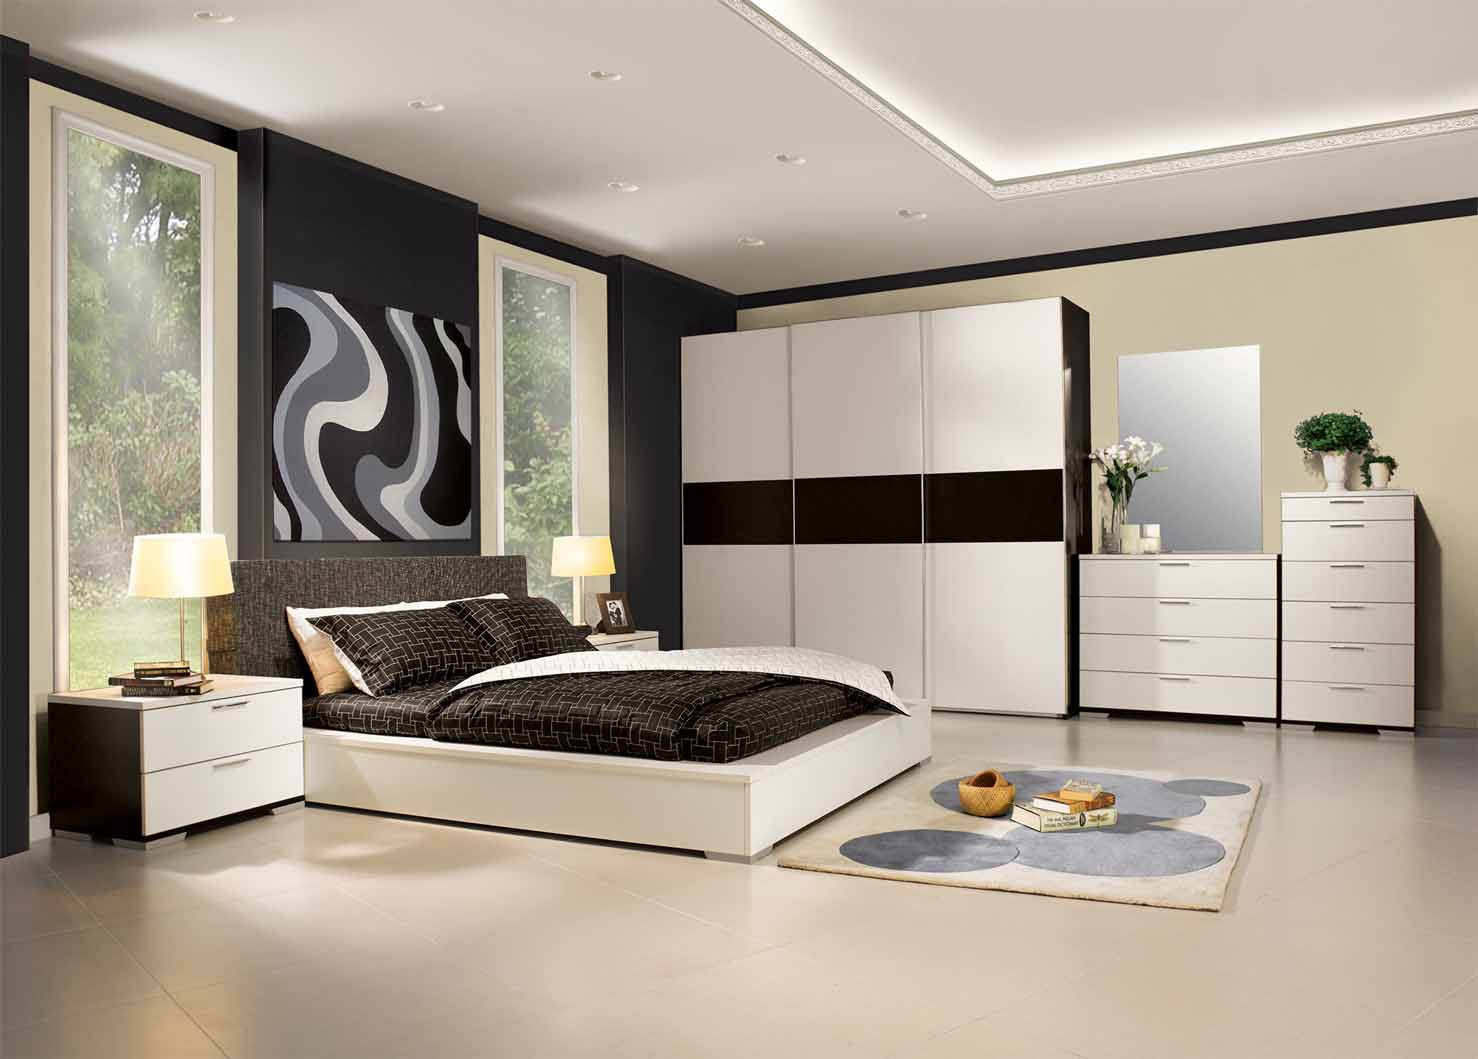 Bedroom Decoration Bedroom Decorating With Mirrors Endearing